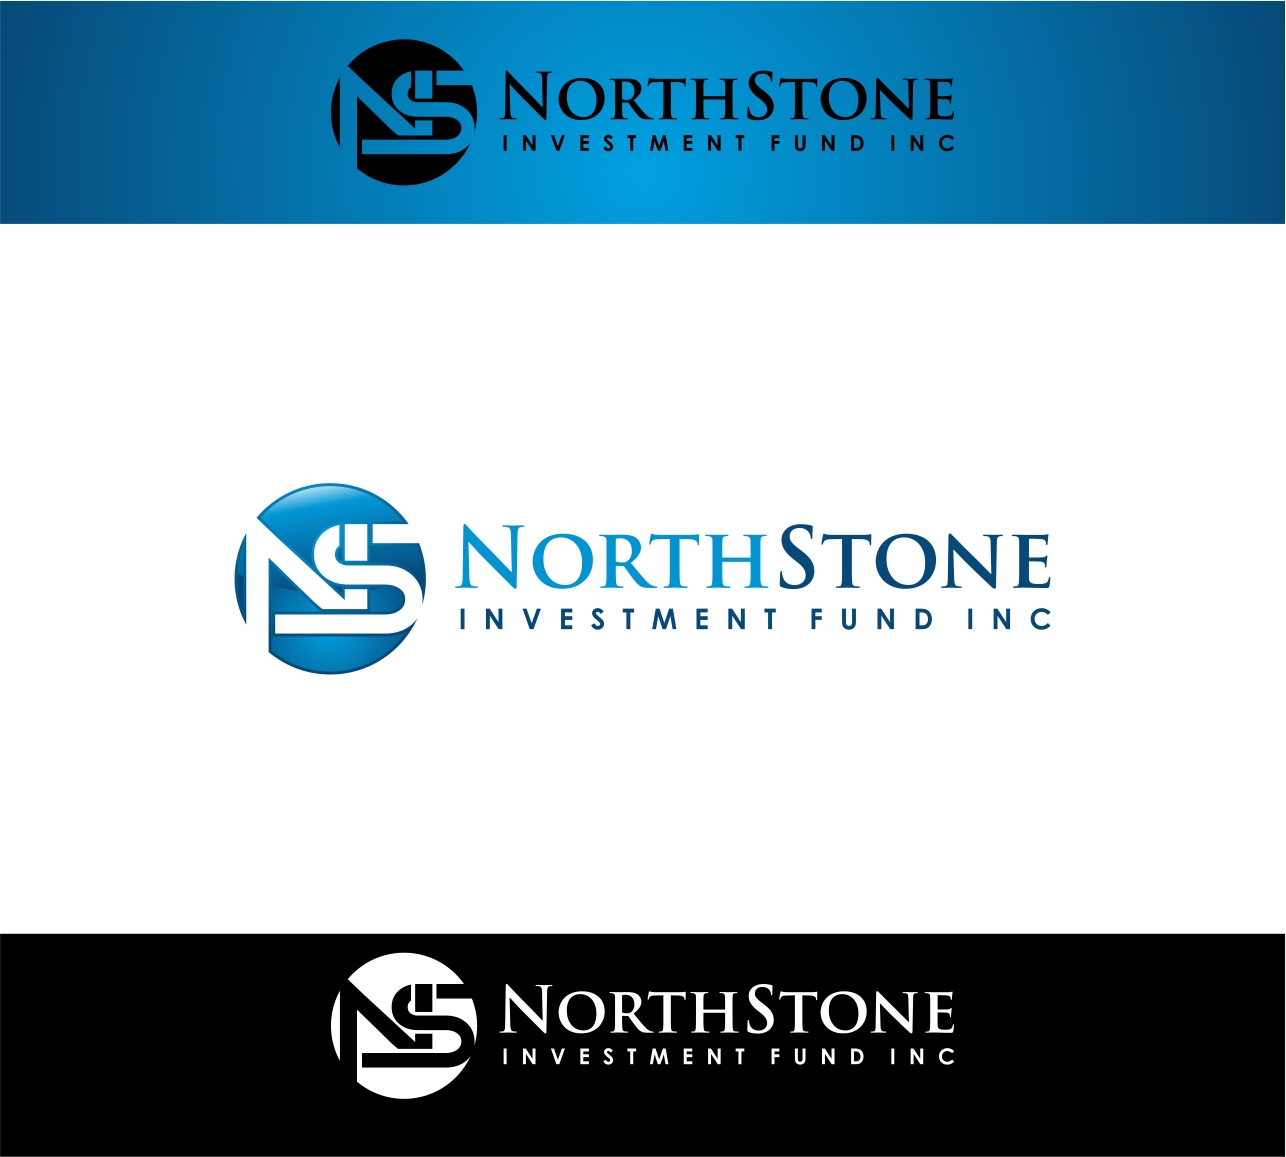 Logo Design by haidu - Entry No. 194 in the Logo Design Contest Unique Logo Design Wanted for NorthStone Investment Fund Inc.